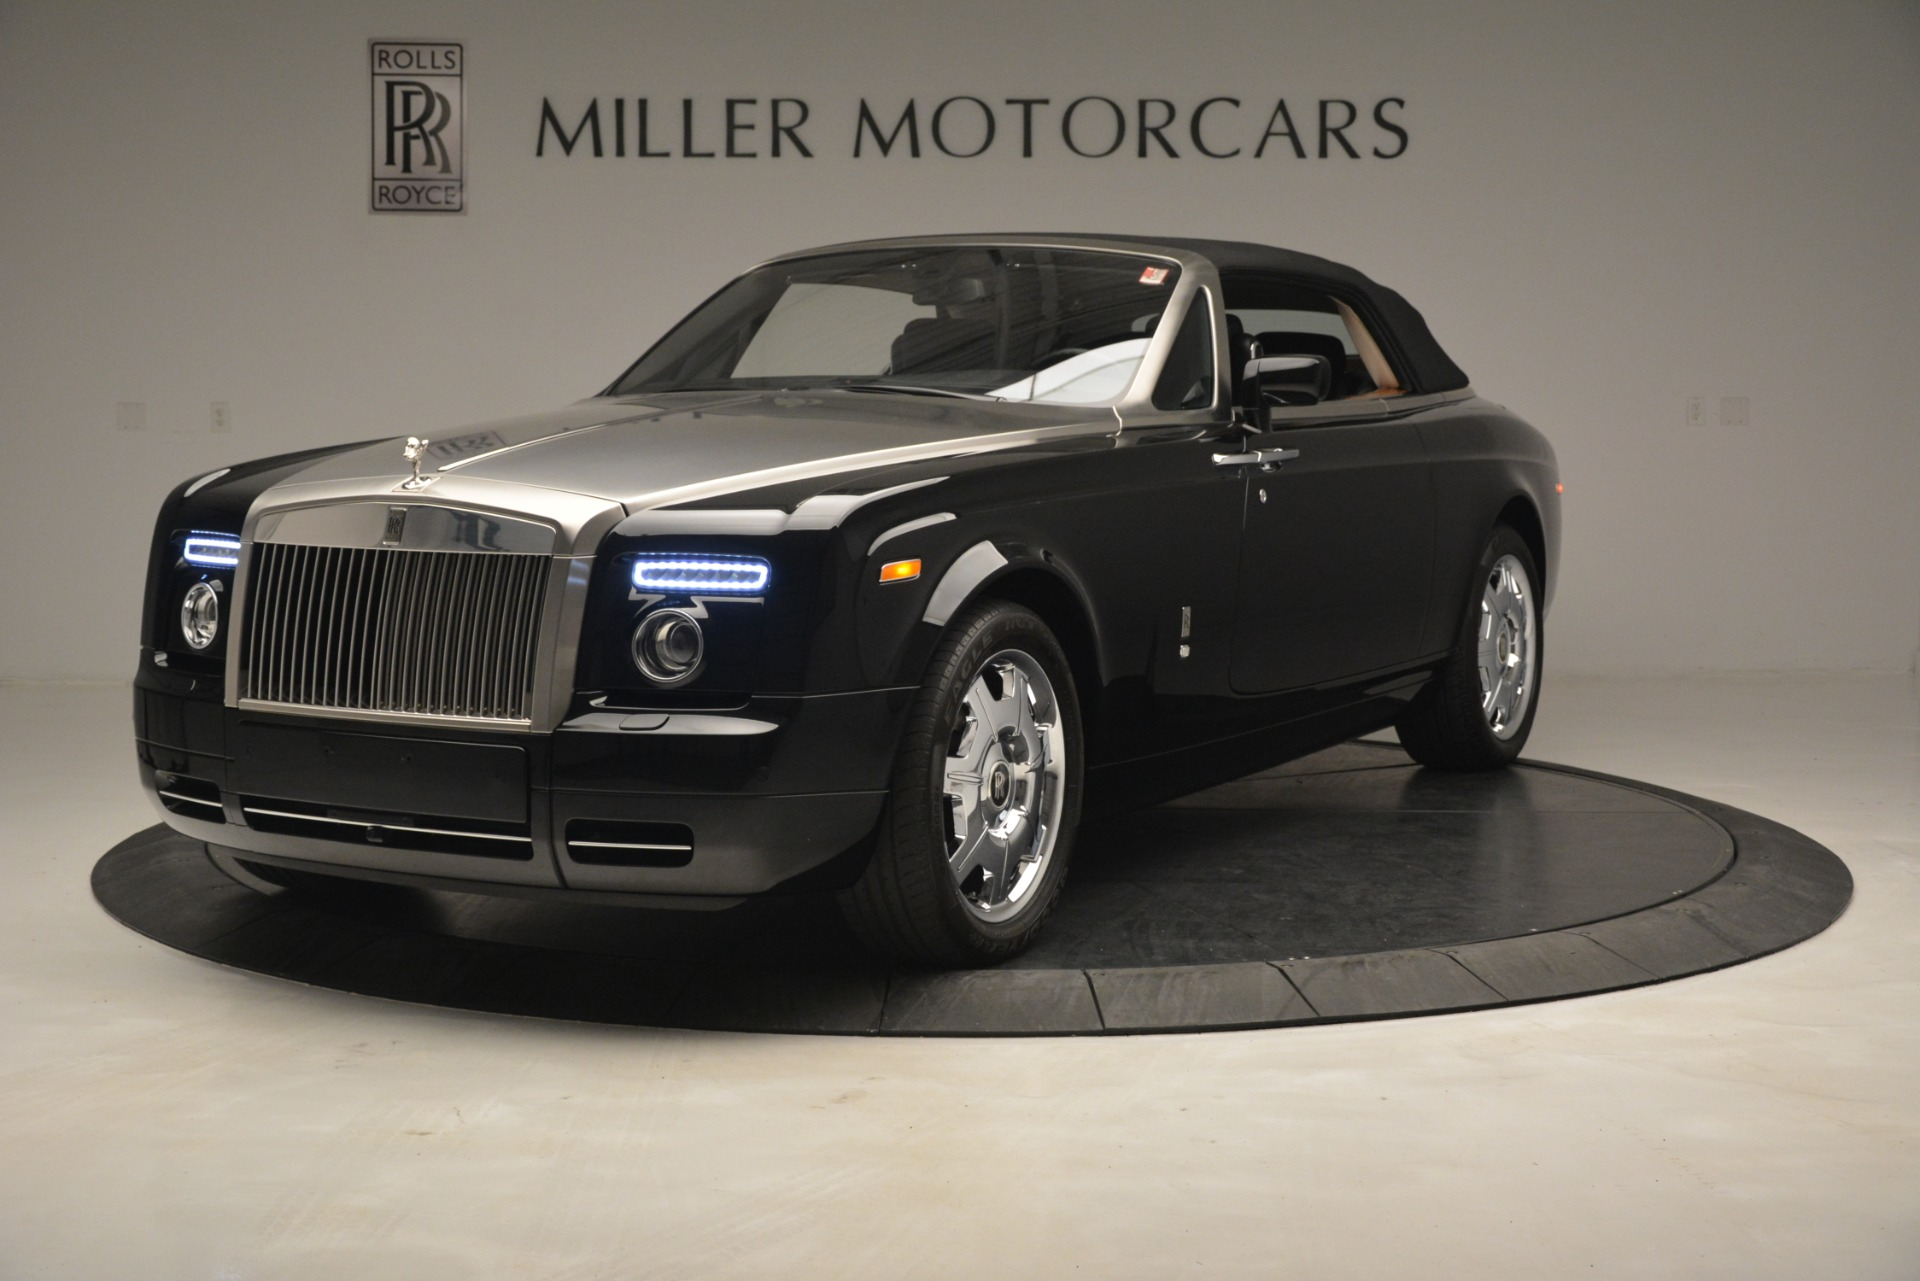 Used 2008 Rolls-Royce Phantom Drophead Coupe  For Sale In Westport, CT 3000_p34